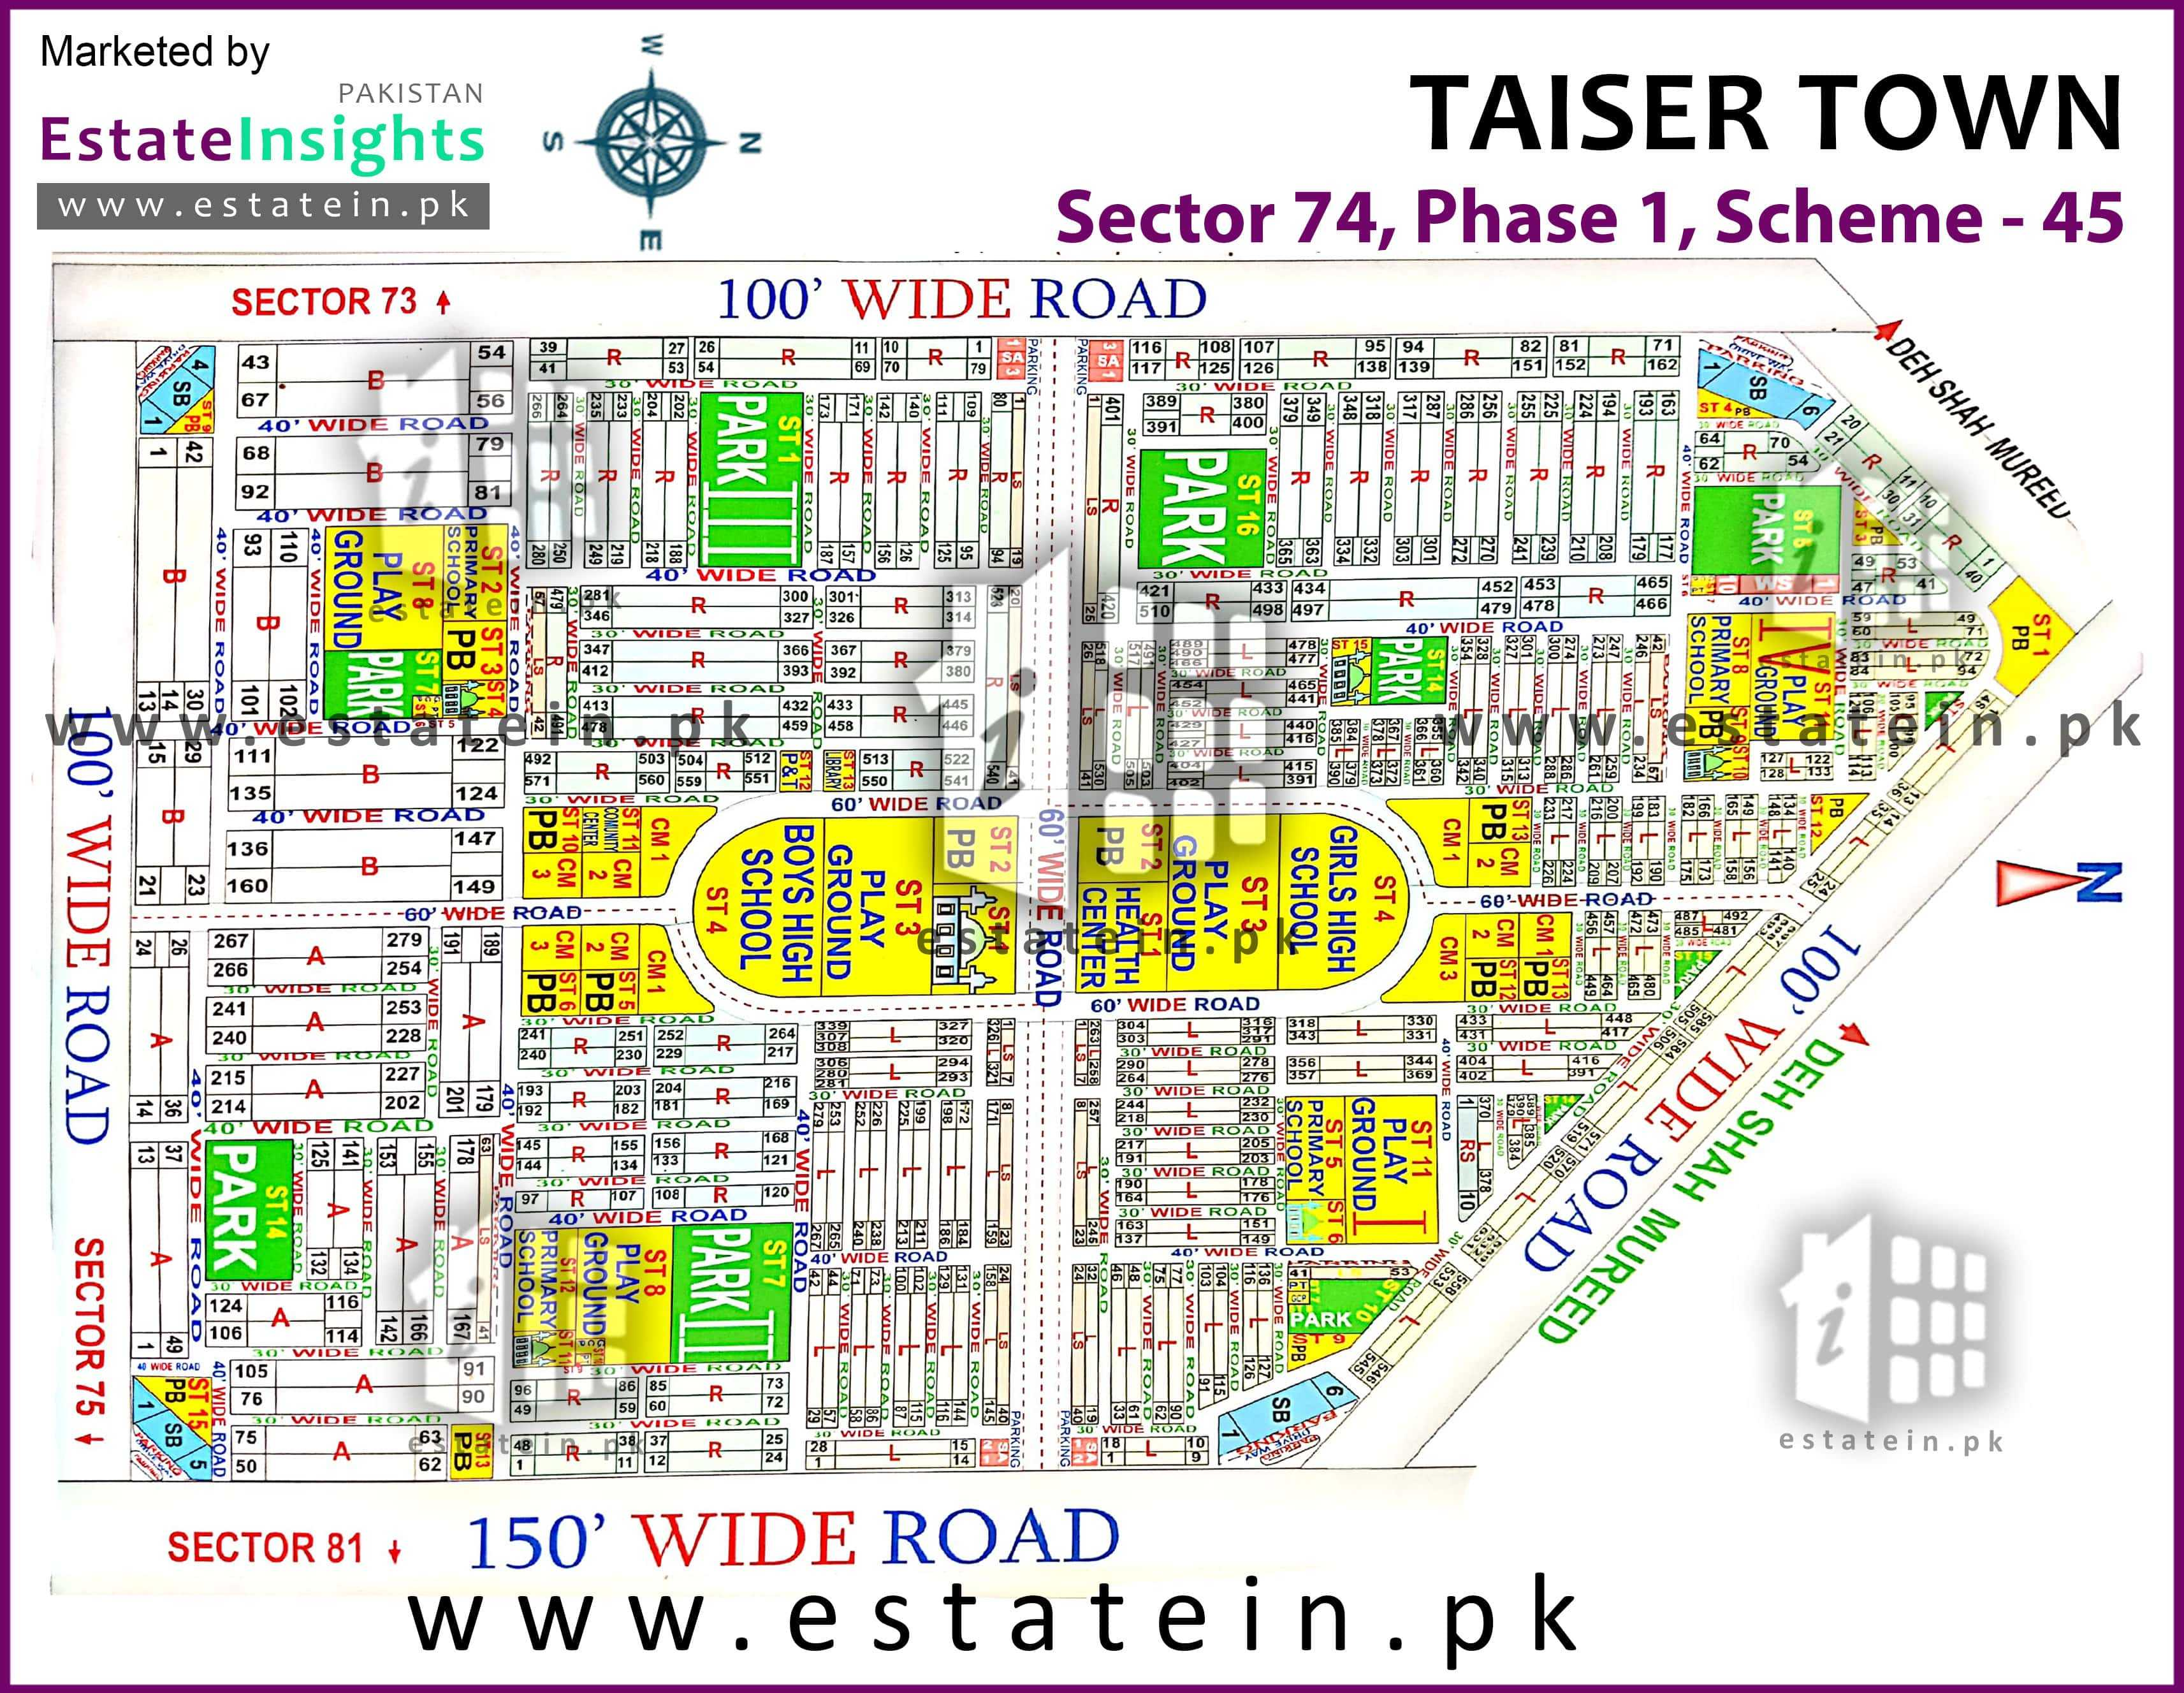 Site Plan of Sector-74 of Taiser Town Phase I